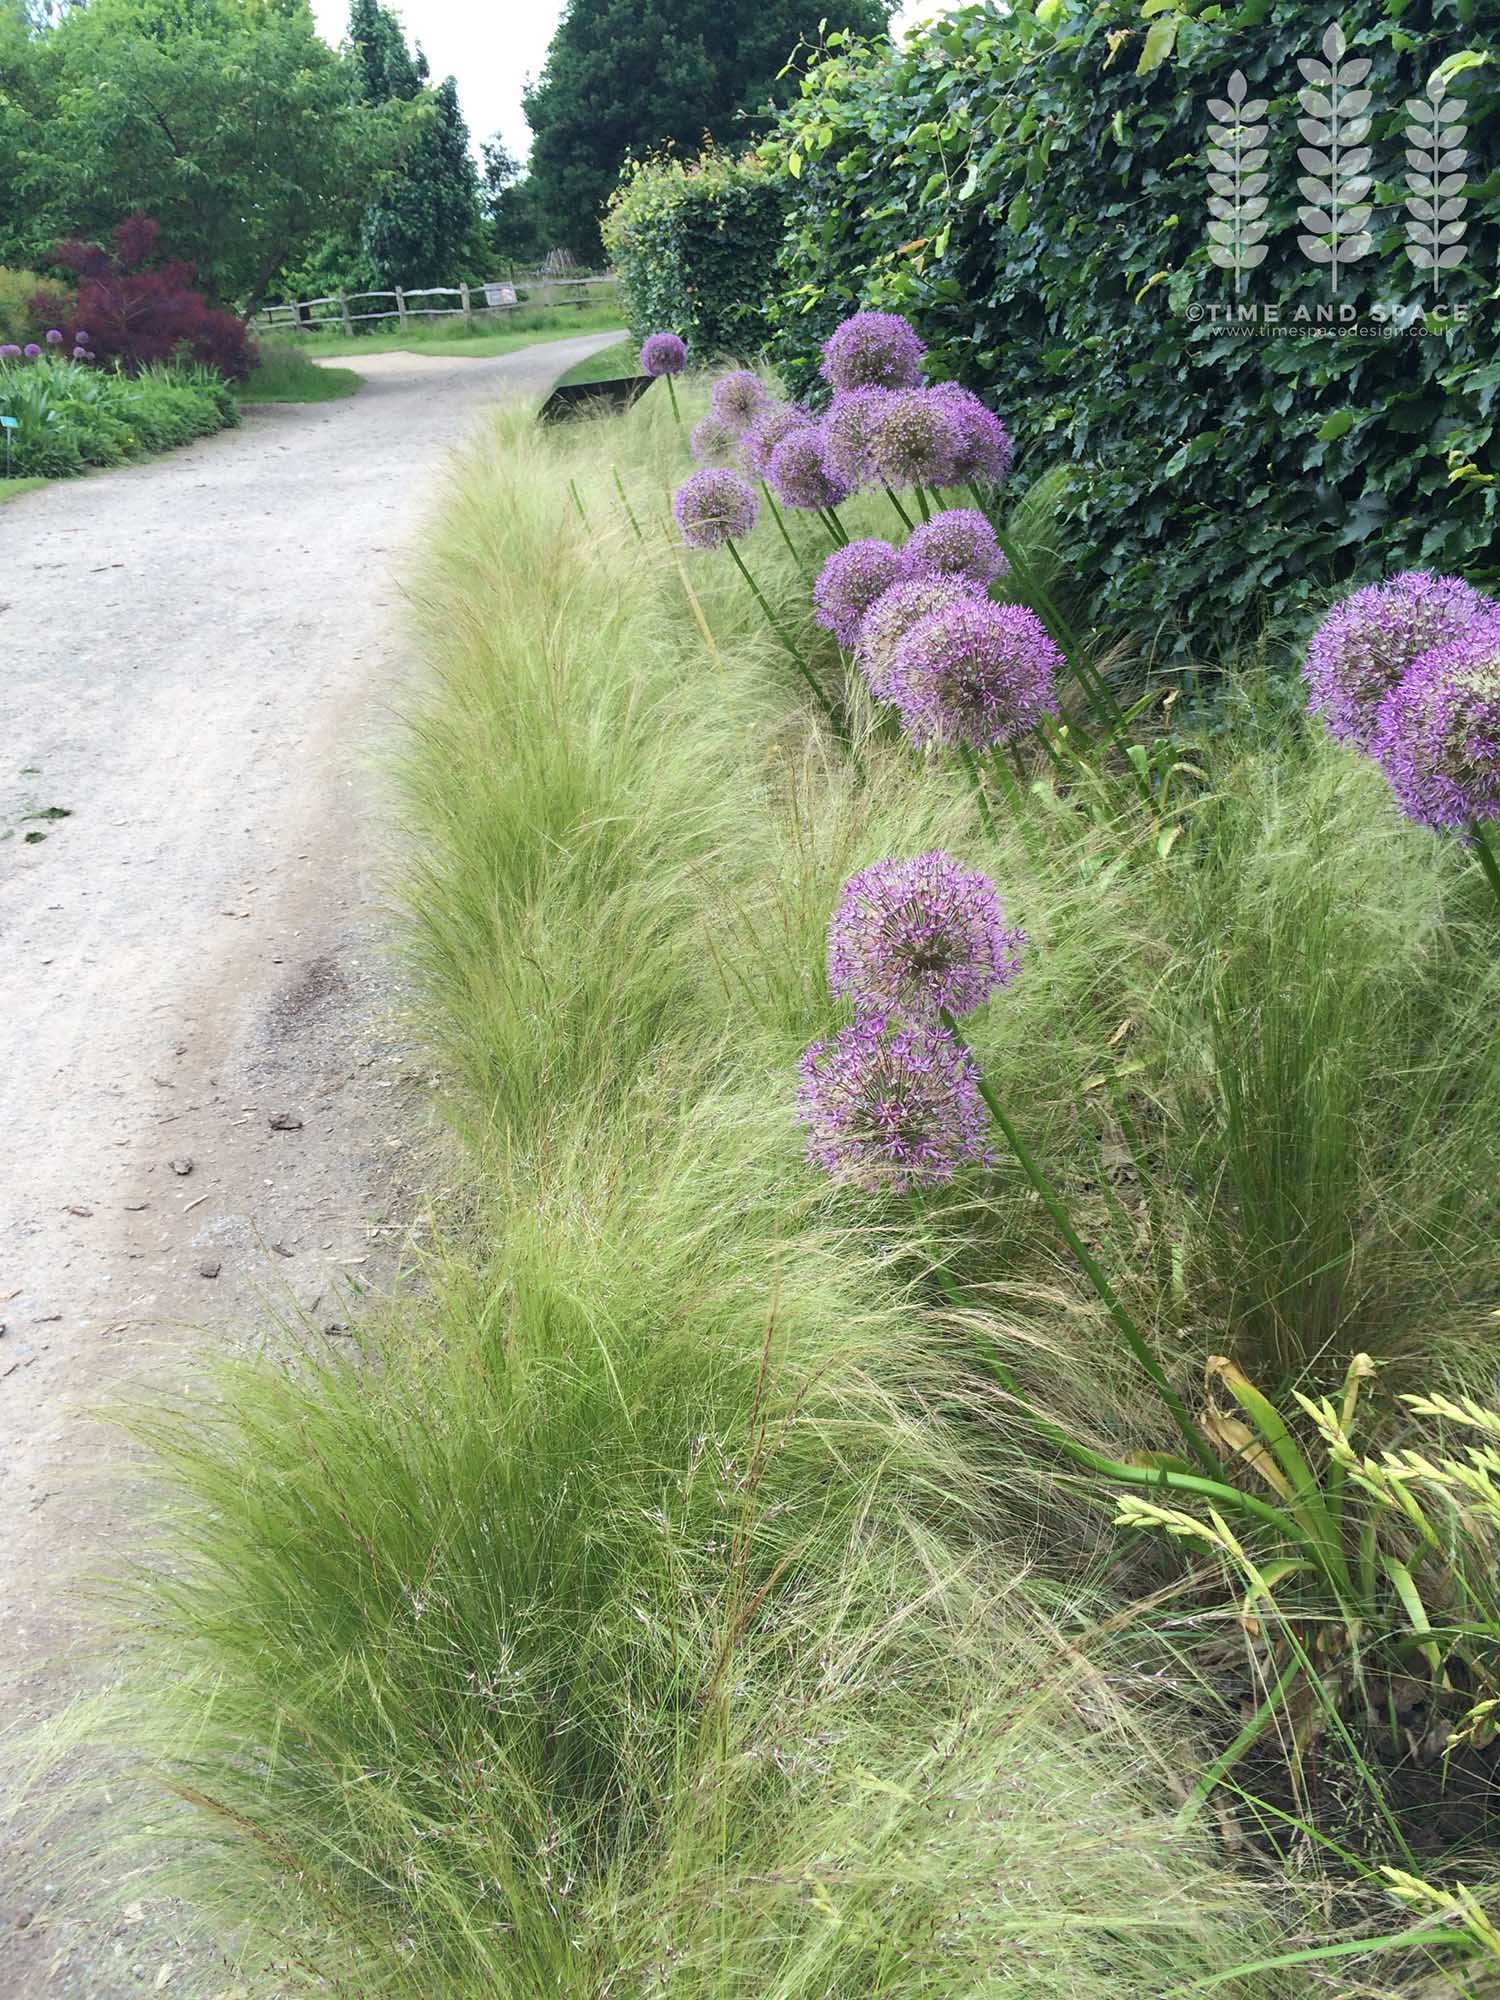 Allium and Stipa tenuissima, at RHS Wisley